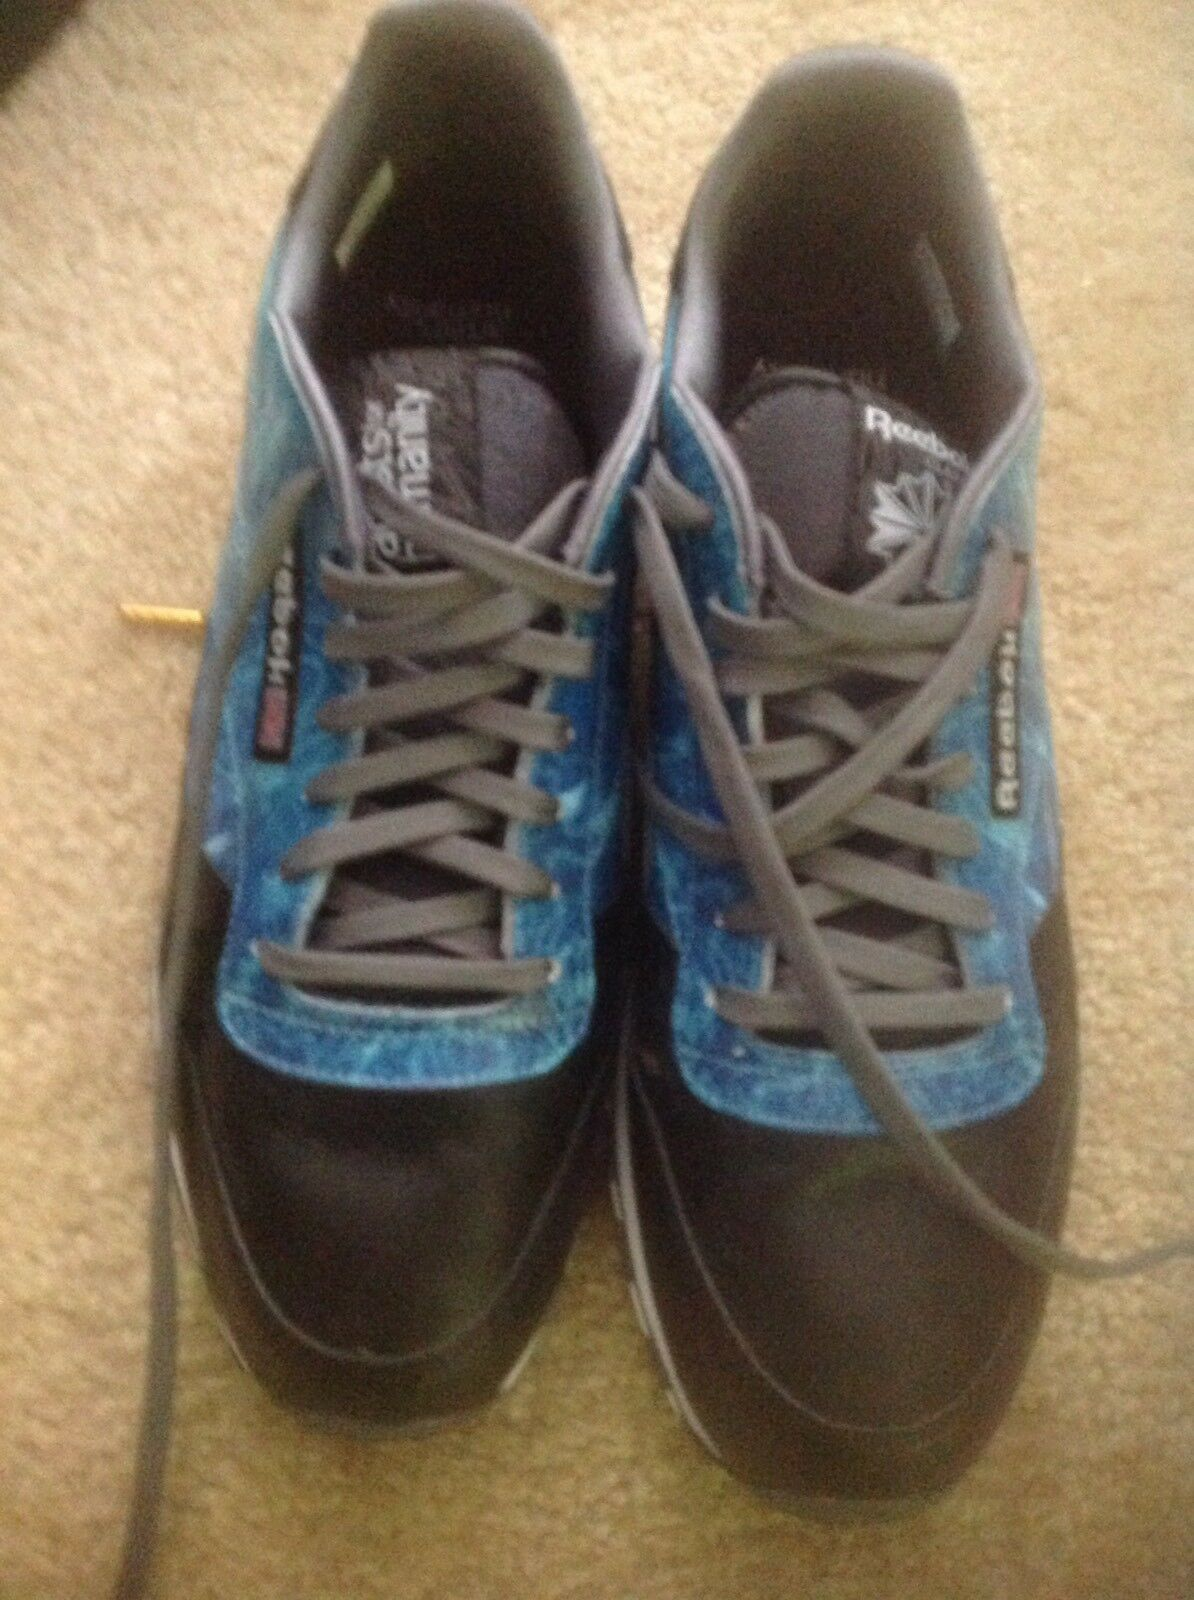 Reebok Classic - Artist For Humanity - Uomo Size 11